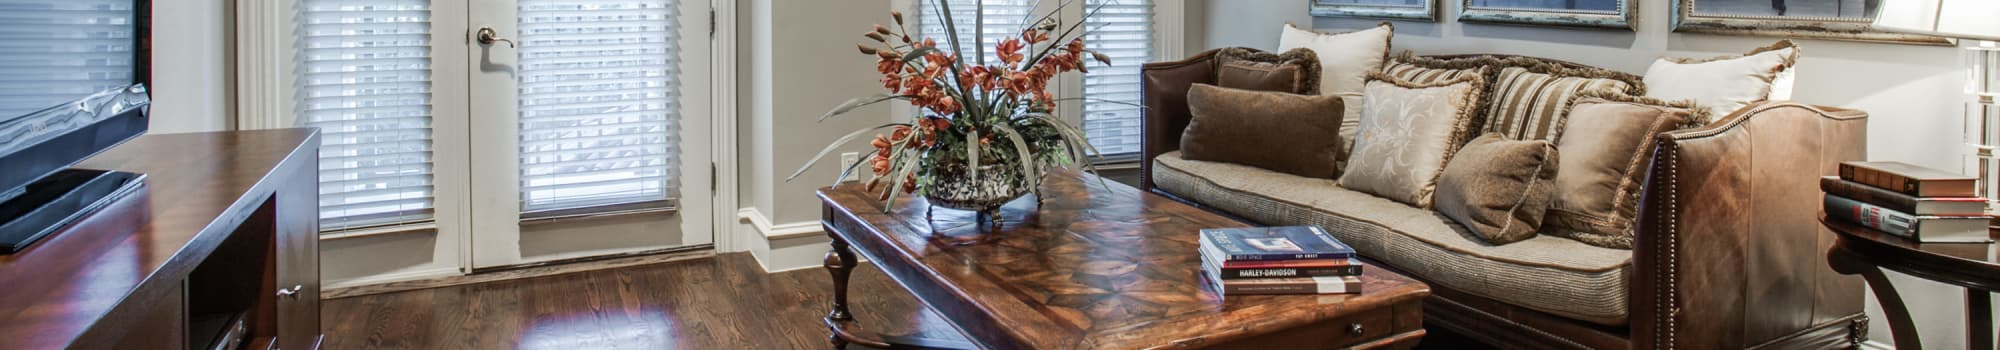 Floor plans at Rienzi at Turtle Creek Apartments in Dallas, Texas